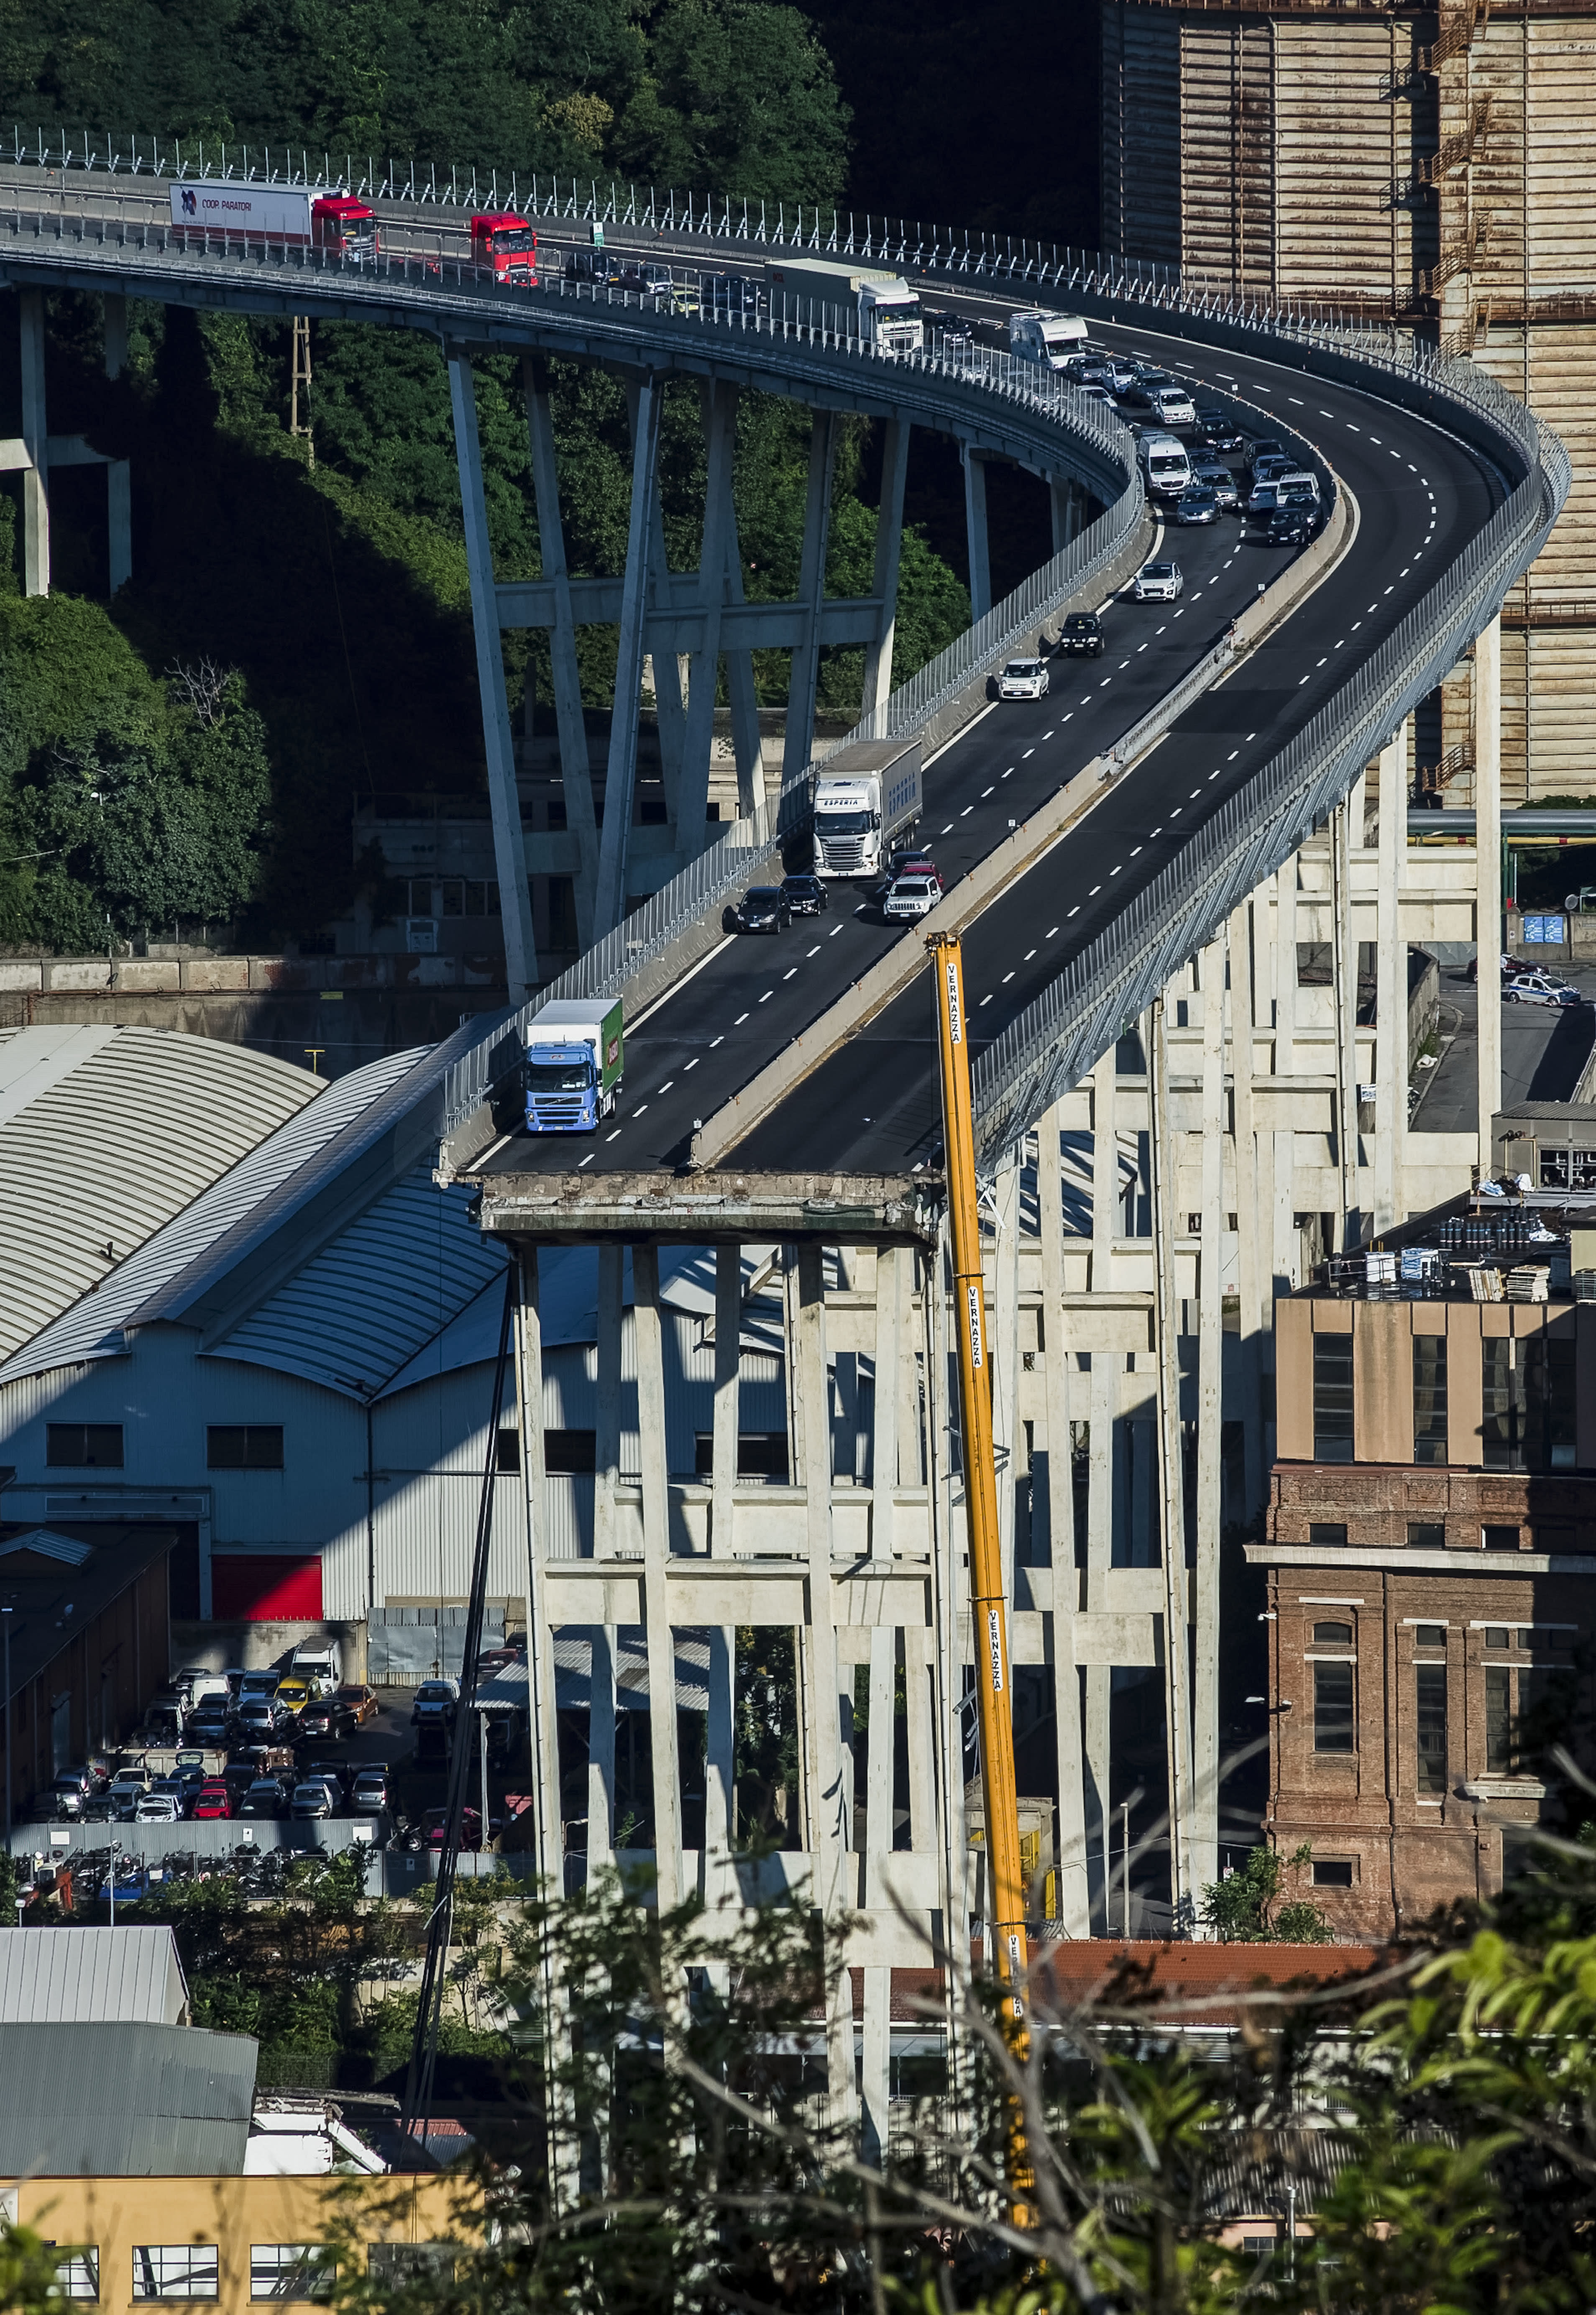 <p>A general view of the collapsed Morandi highway bridge in Genoa, northern Italy, Wednesday, Aug. 15, 2018. (Photo: Nicola Marfisi/AP) </p>